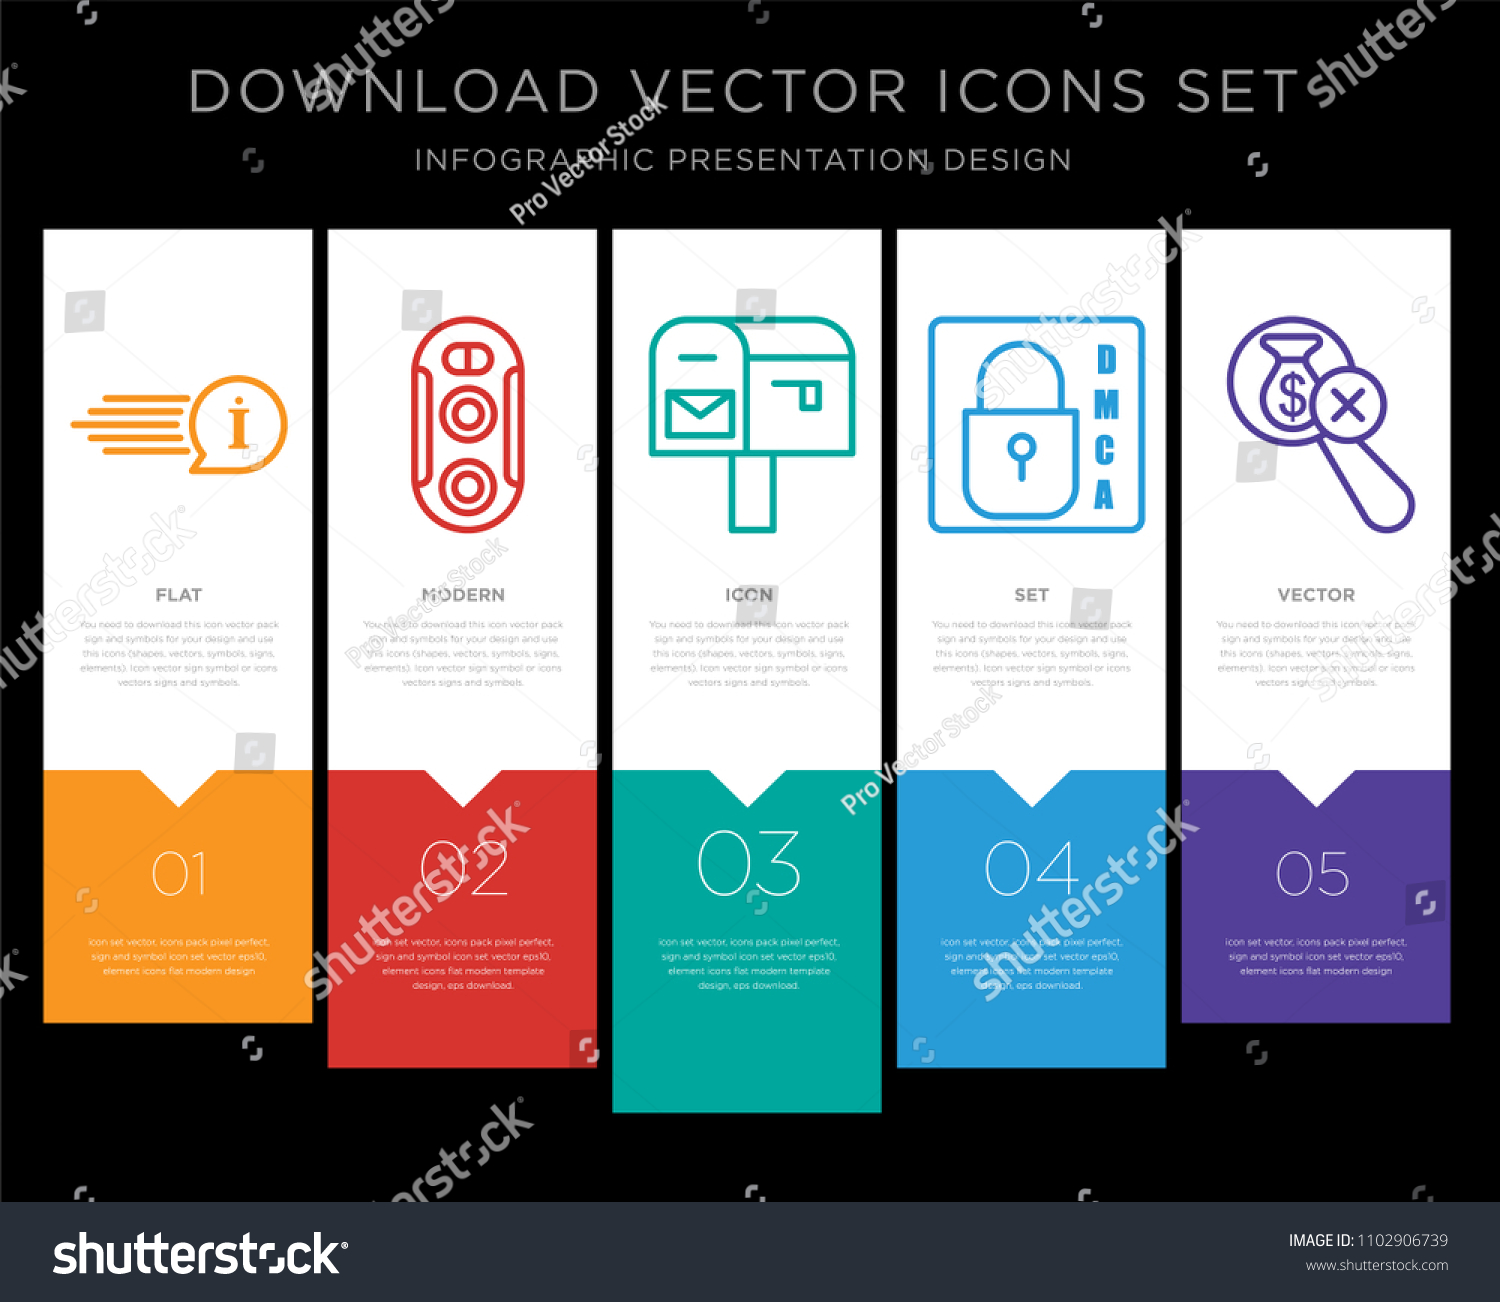 5 Vector Icons Such Quick Facts Stock Vector HD (Royalty Free ...